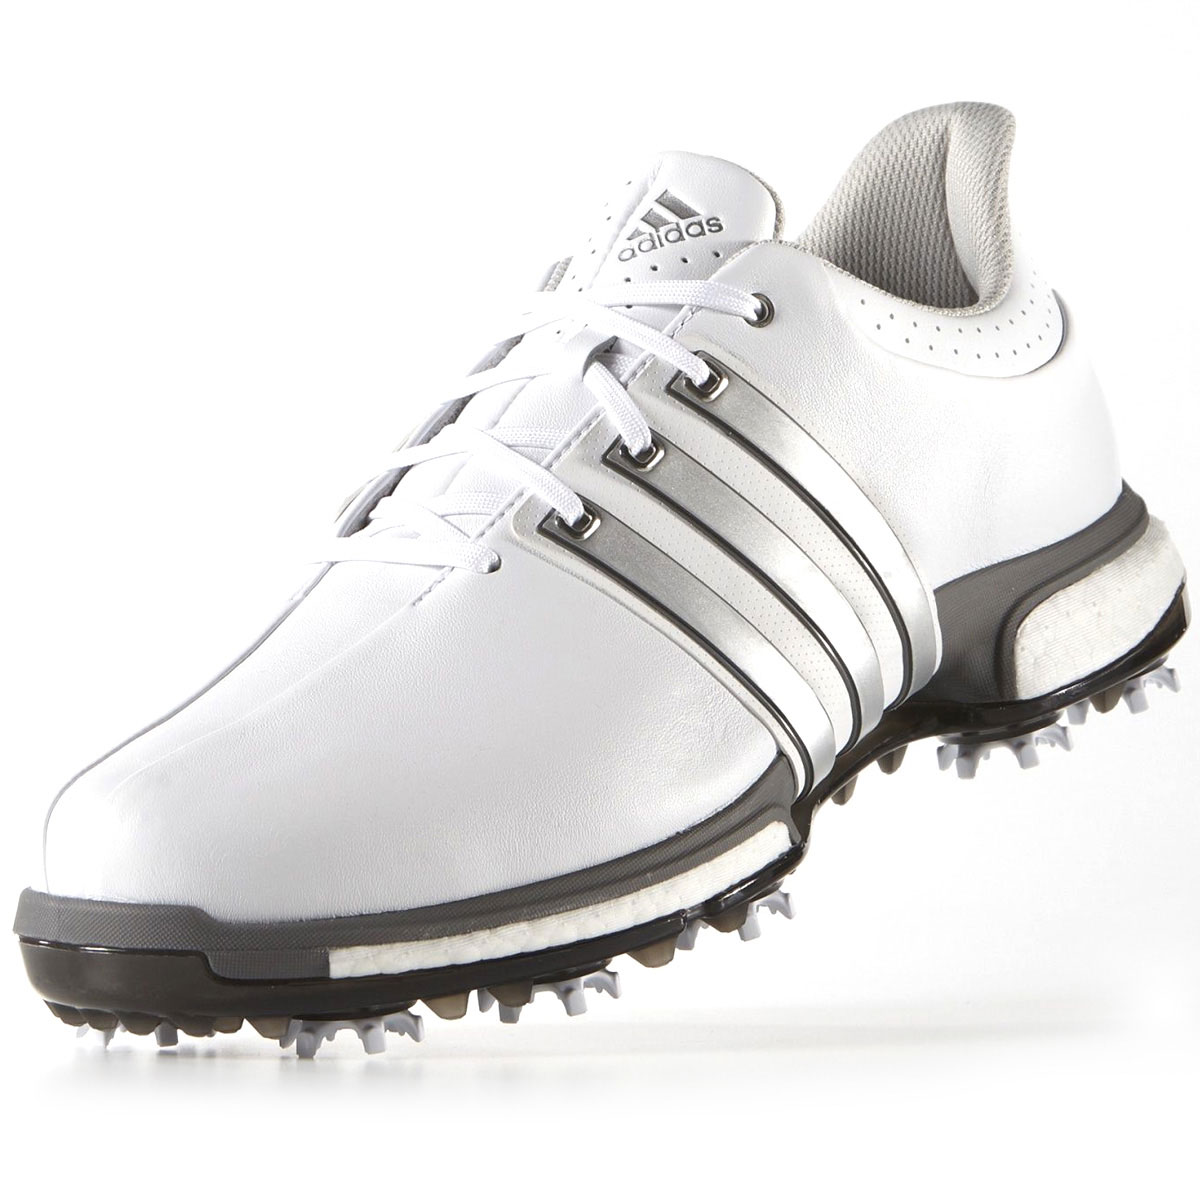 Adidas Golf Mens Tour 360 Boost ClimaProof Waterproof Golf Shoes; Picture 2  of 5 ...